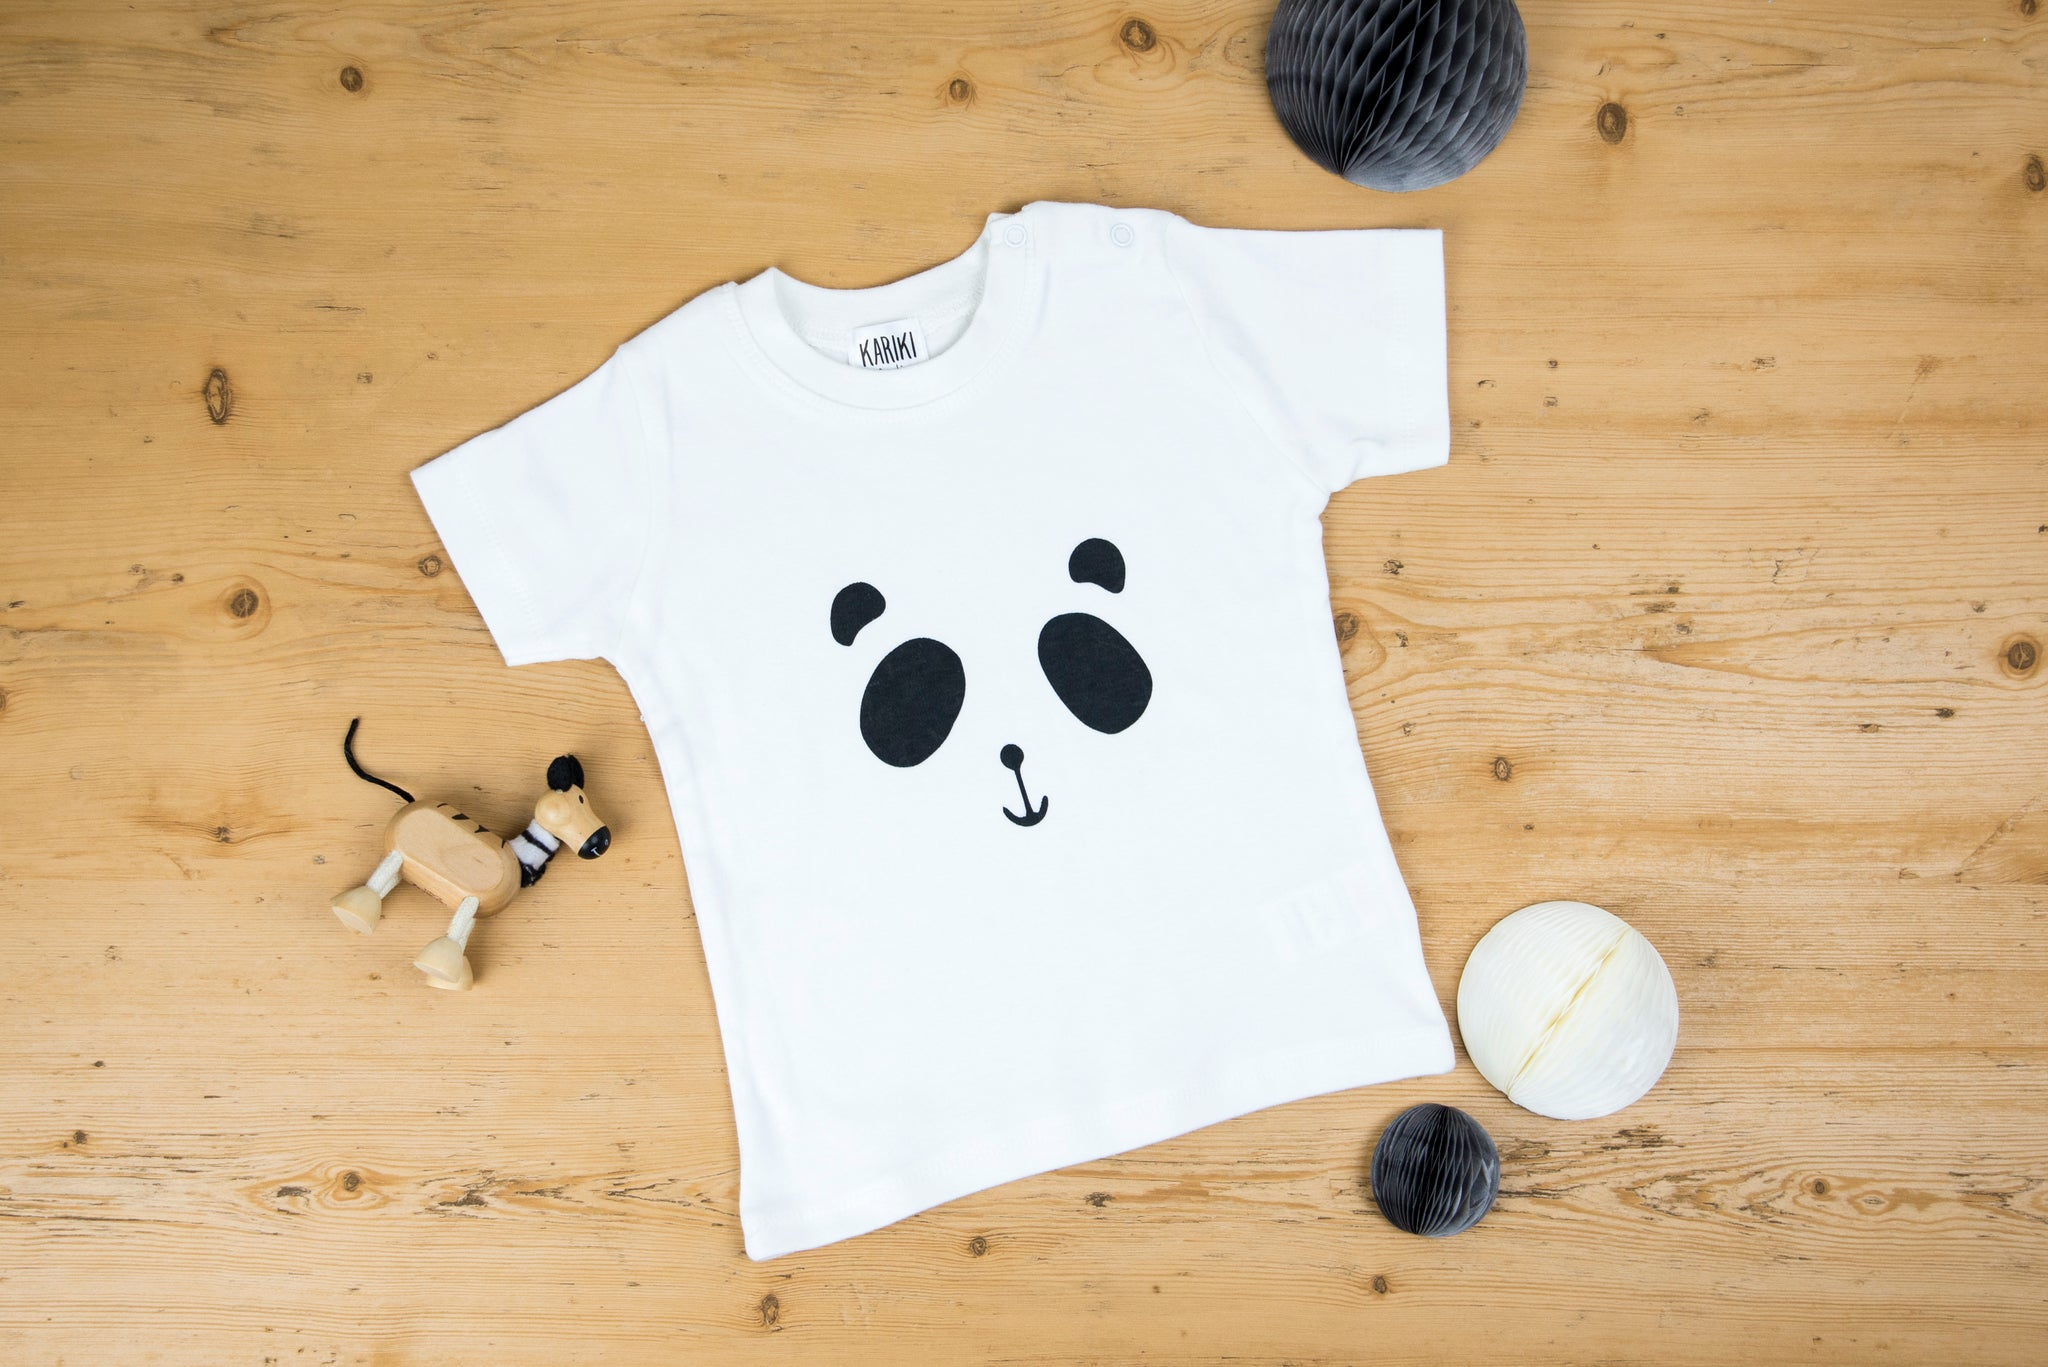 246b568e2892 Patch the Panda Baby T-shirt – Kariki Studio